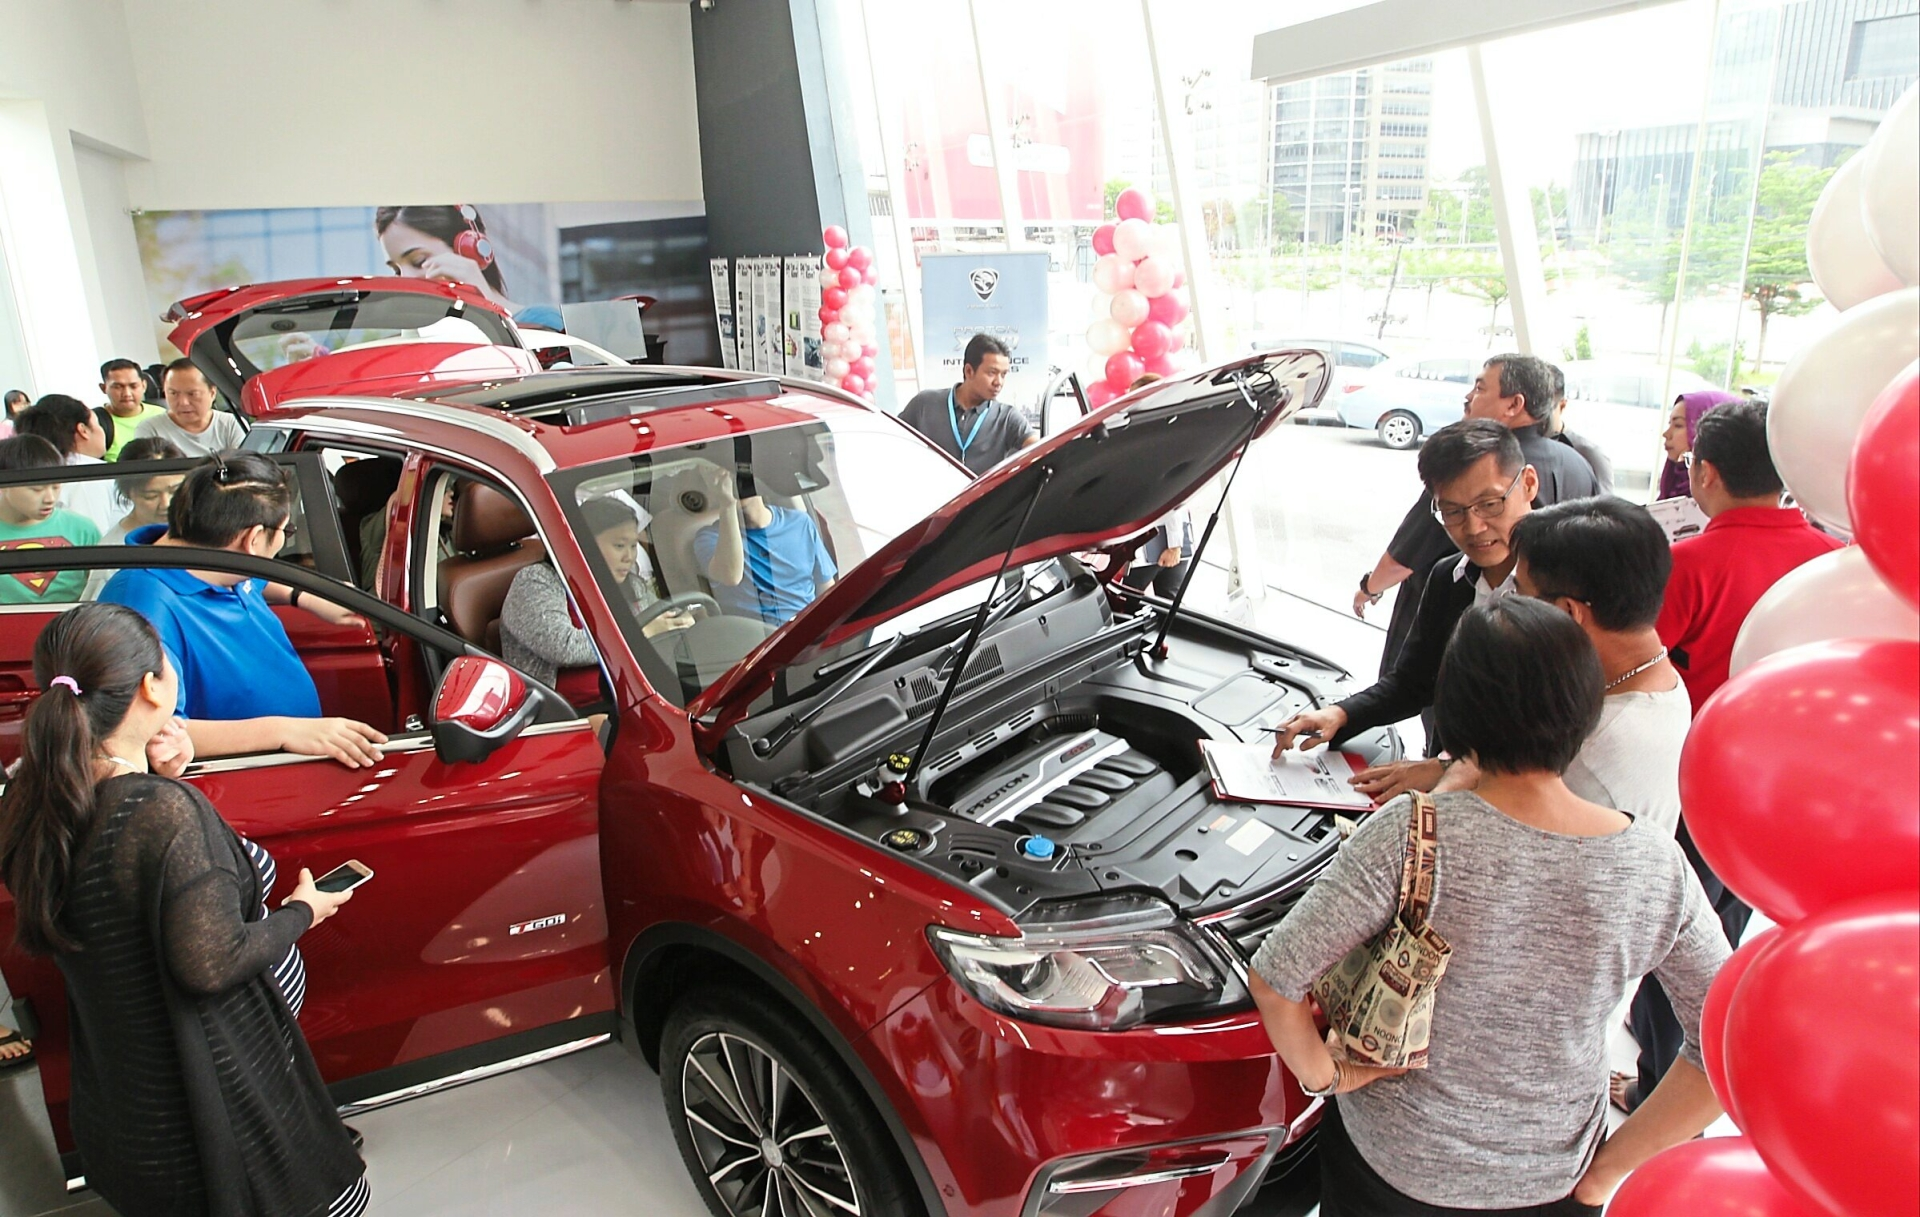 Game changer: Proton has delivered more than 24,000 units of the X70. The industry is waiting for Proton to launch its next new model – a smaller SUV that many are tentatively calling it the X50.